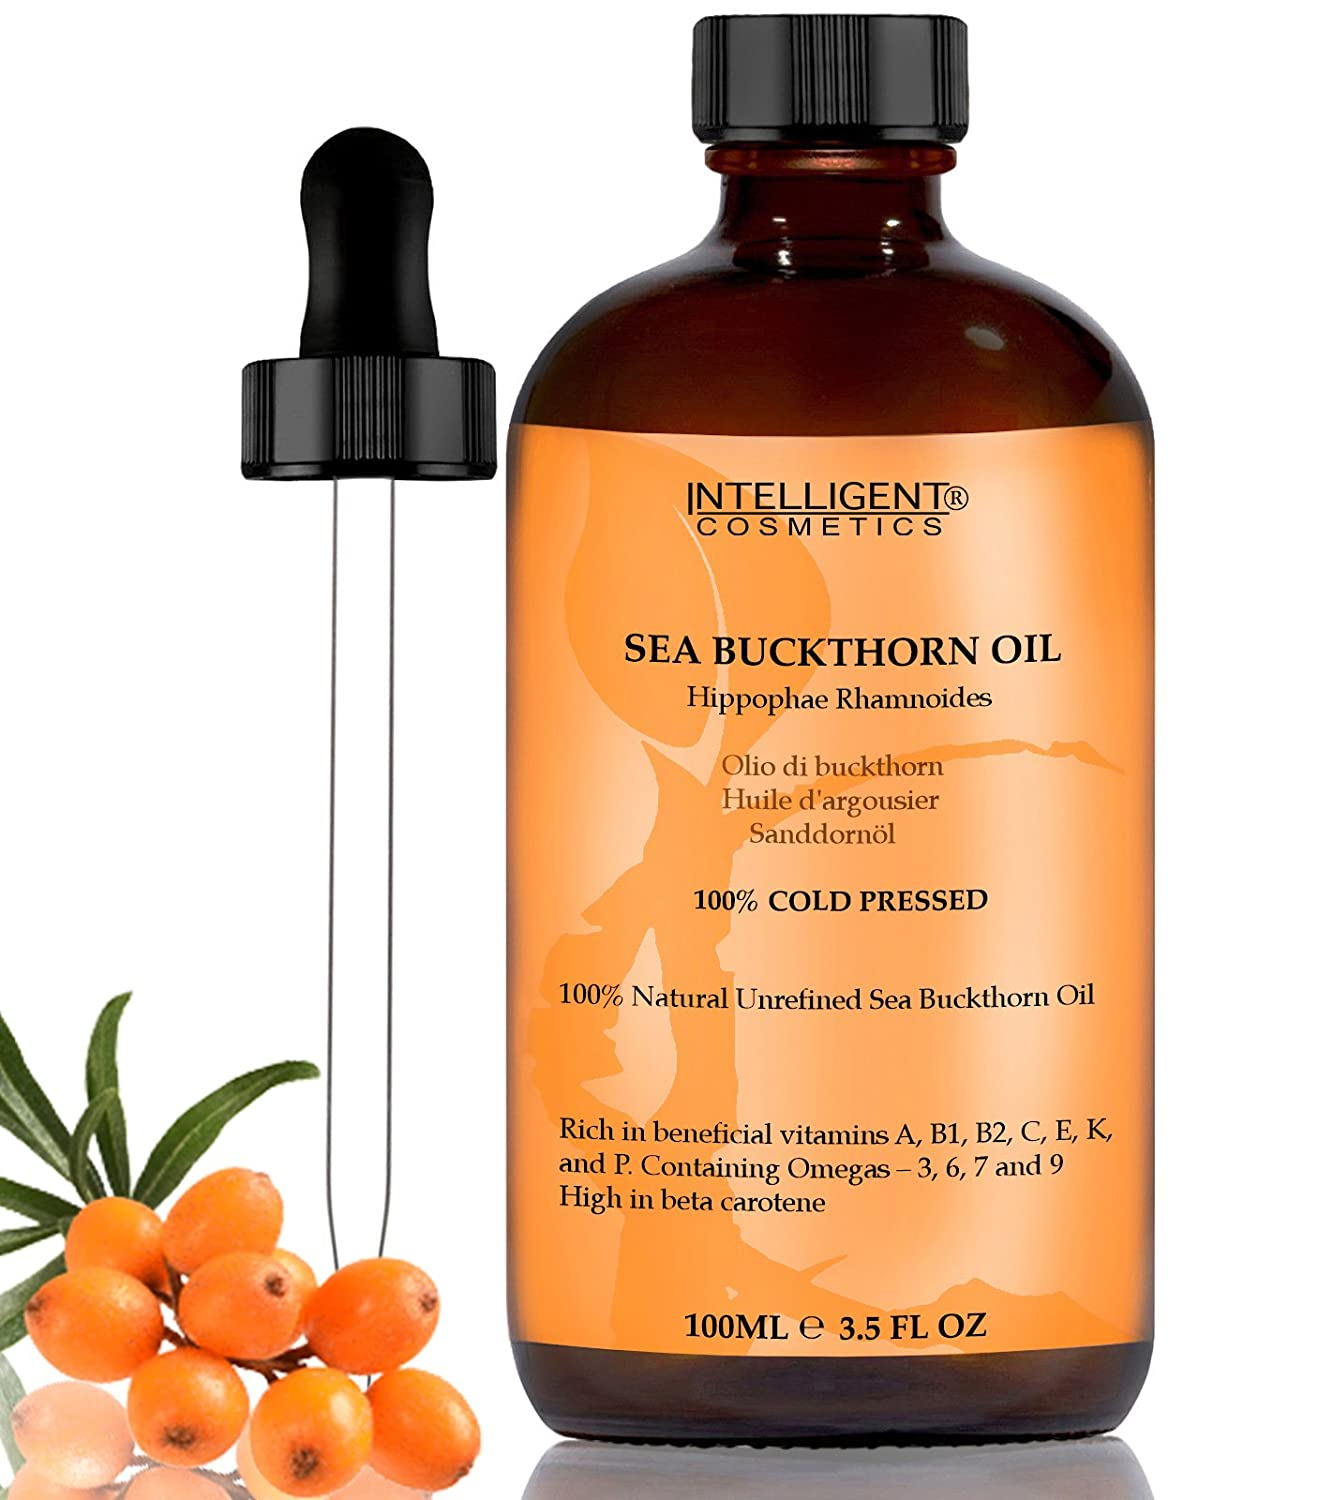 SEA BUCKTHORN OIL 100ML, 100% Cold Pressed Organic, Unrefined, Pure & Natural, Repairs Damaged Skin, Calms Irritated Skin, Heals Rosacea, Supplied in Glass Amber Bottle with Pipette Intelligent Cosmetics®